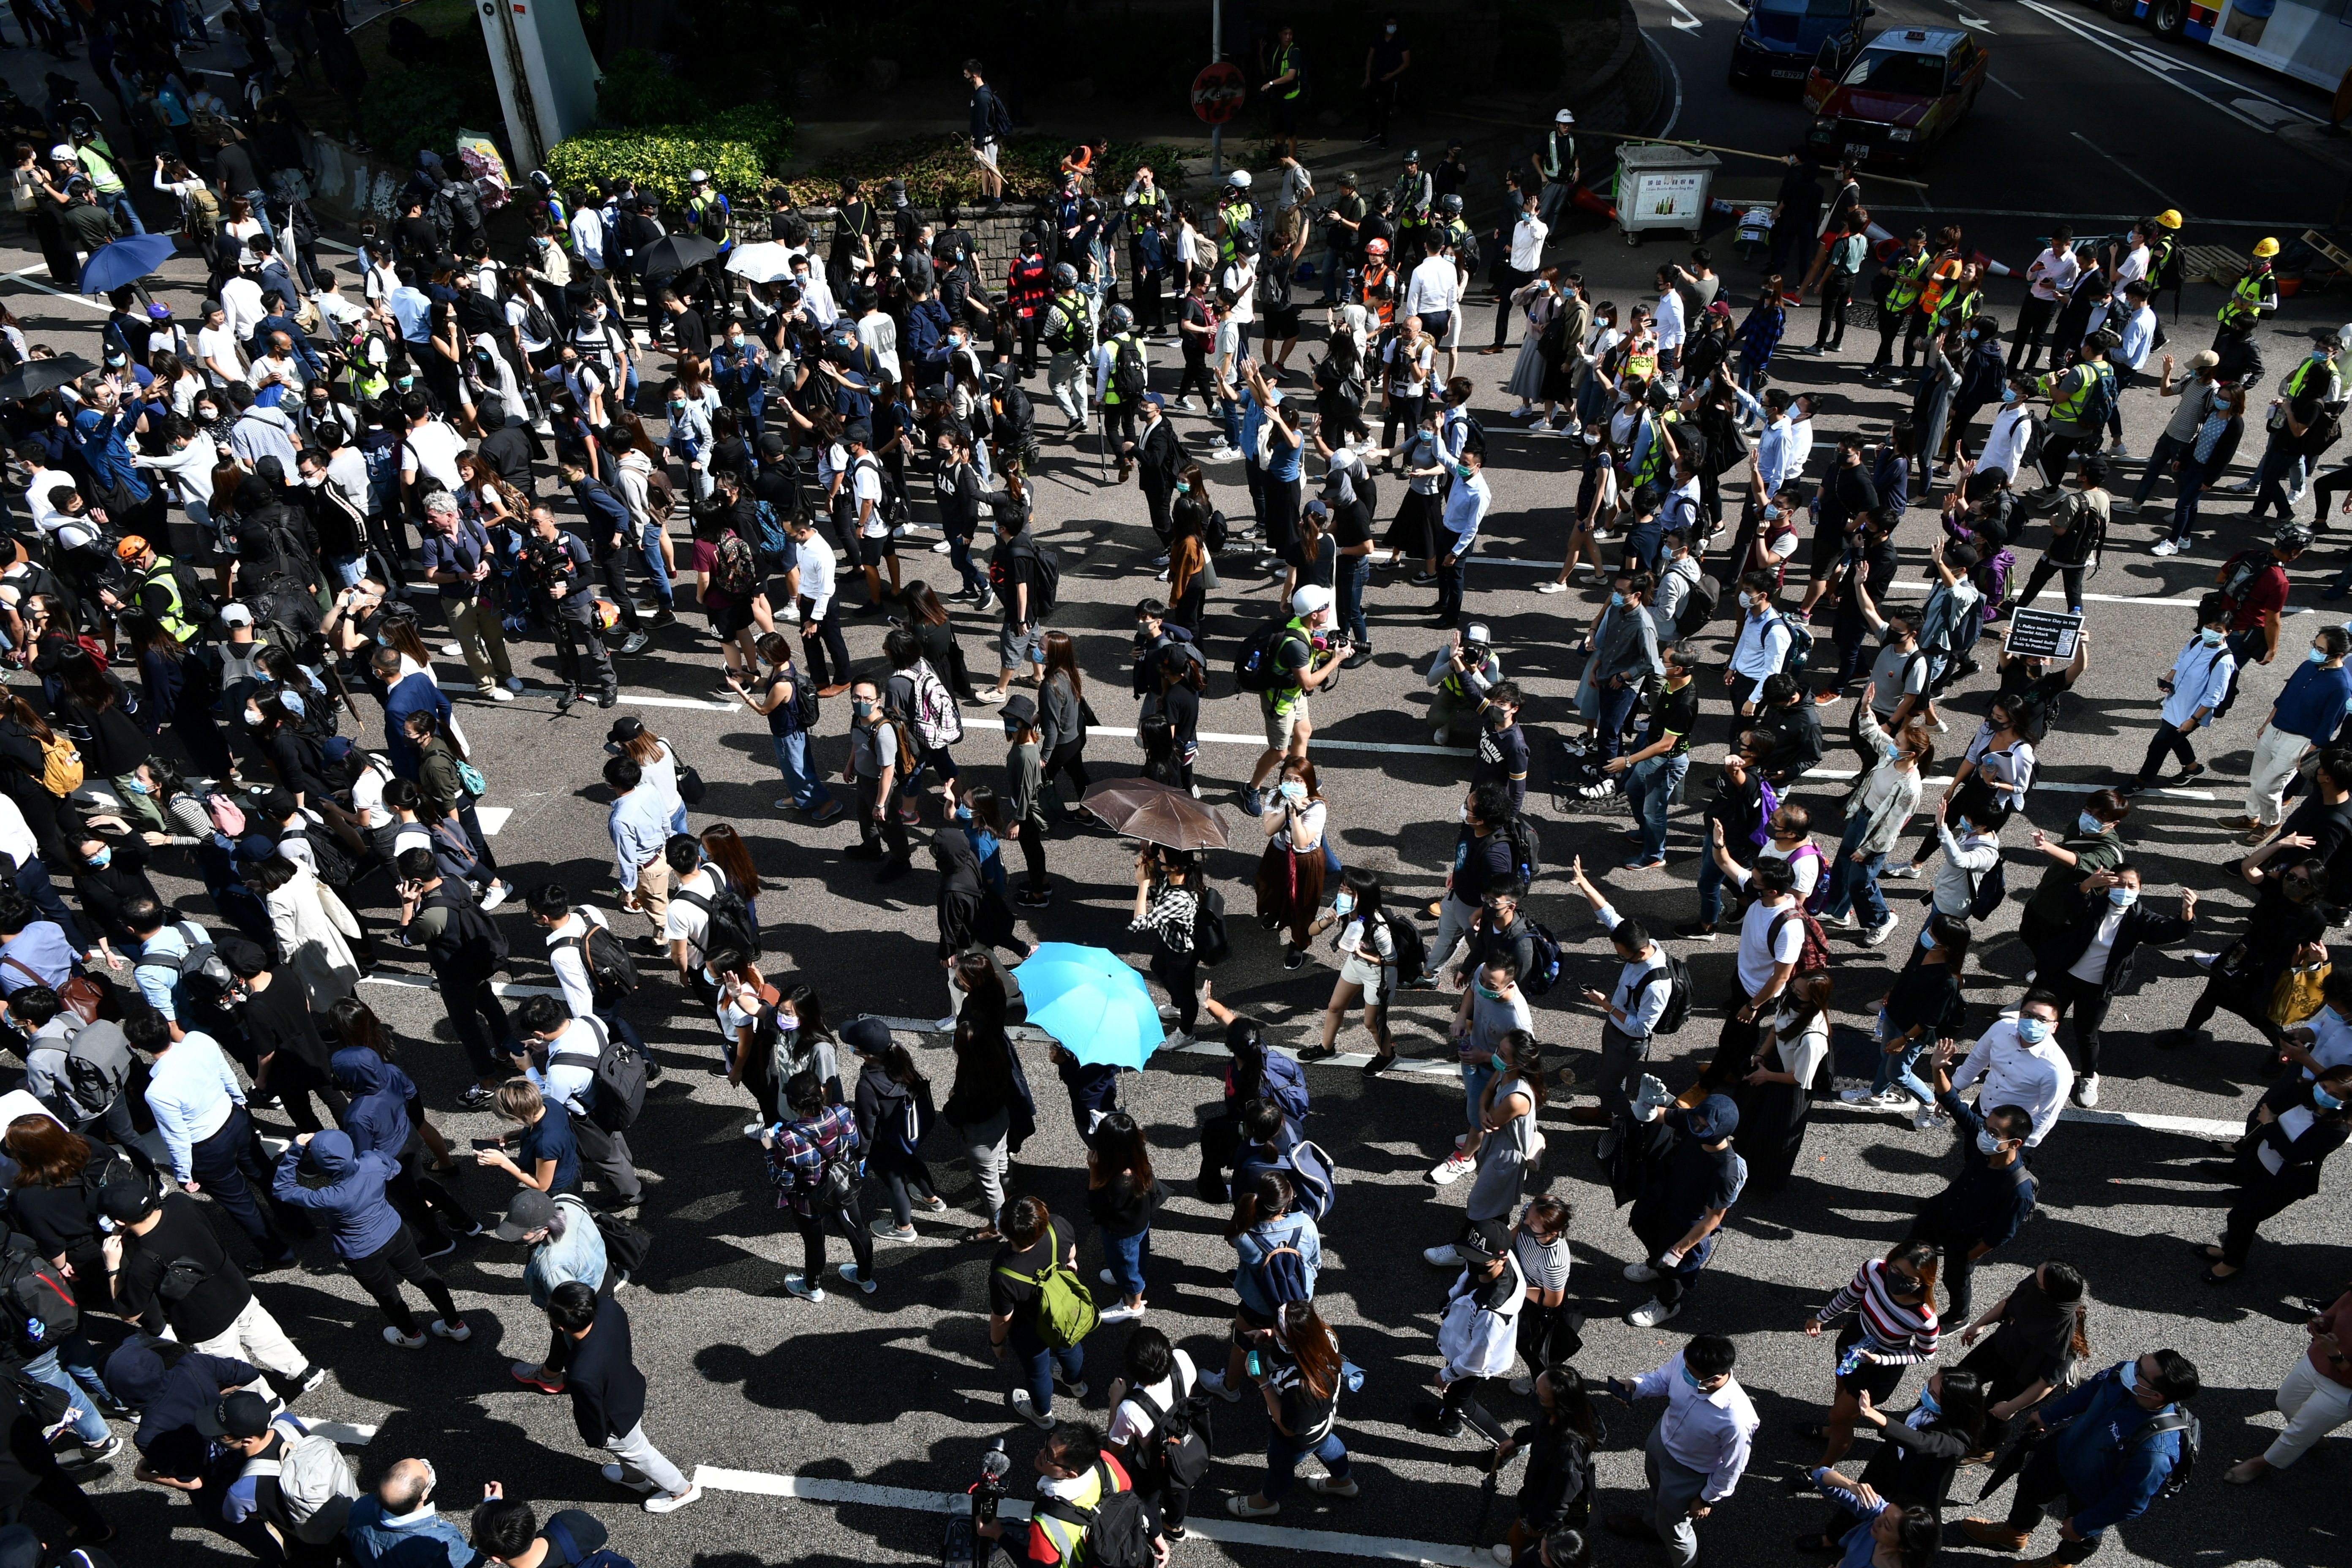 Demonstrators march along a main thoroughfare during a protest in Hong Kong's Central district.